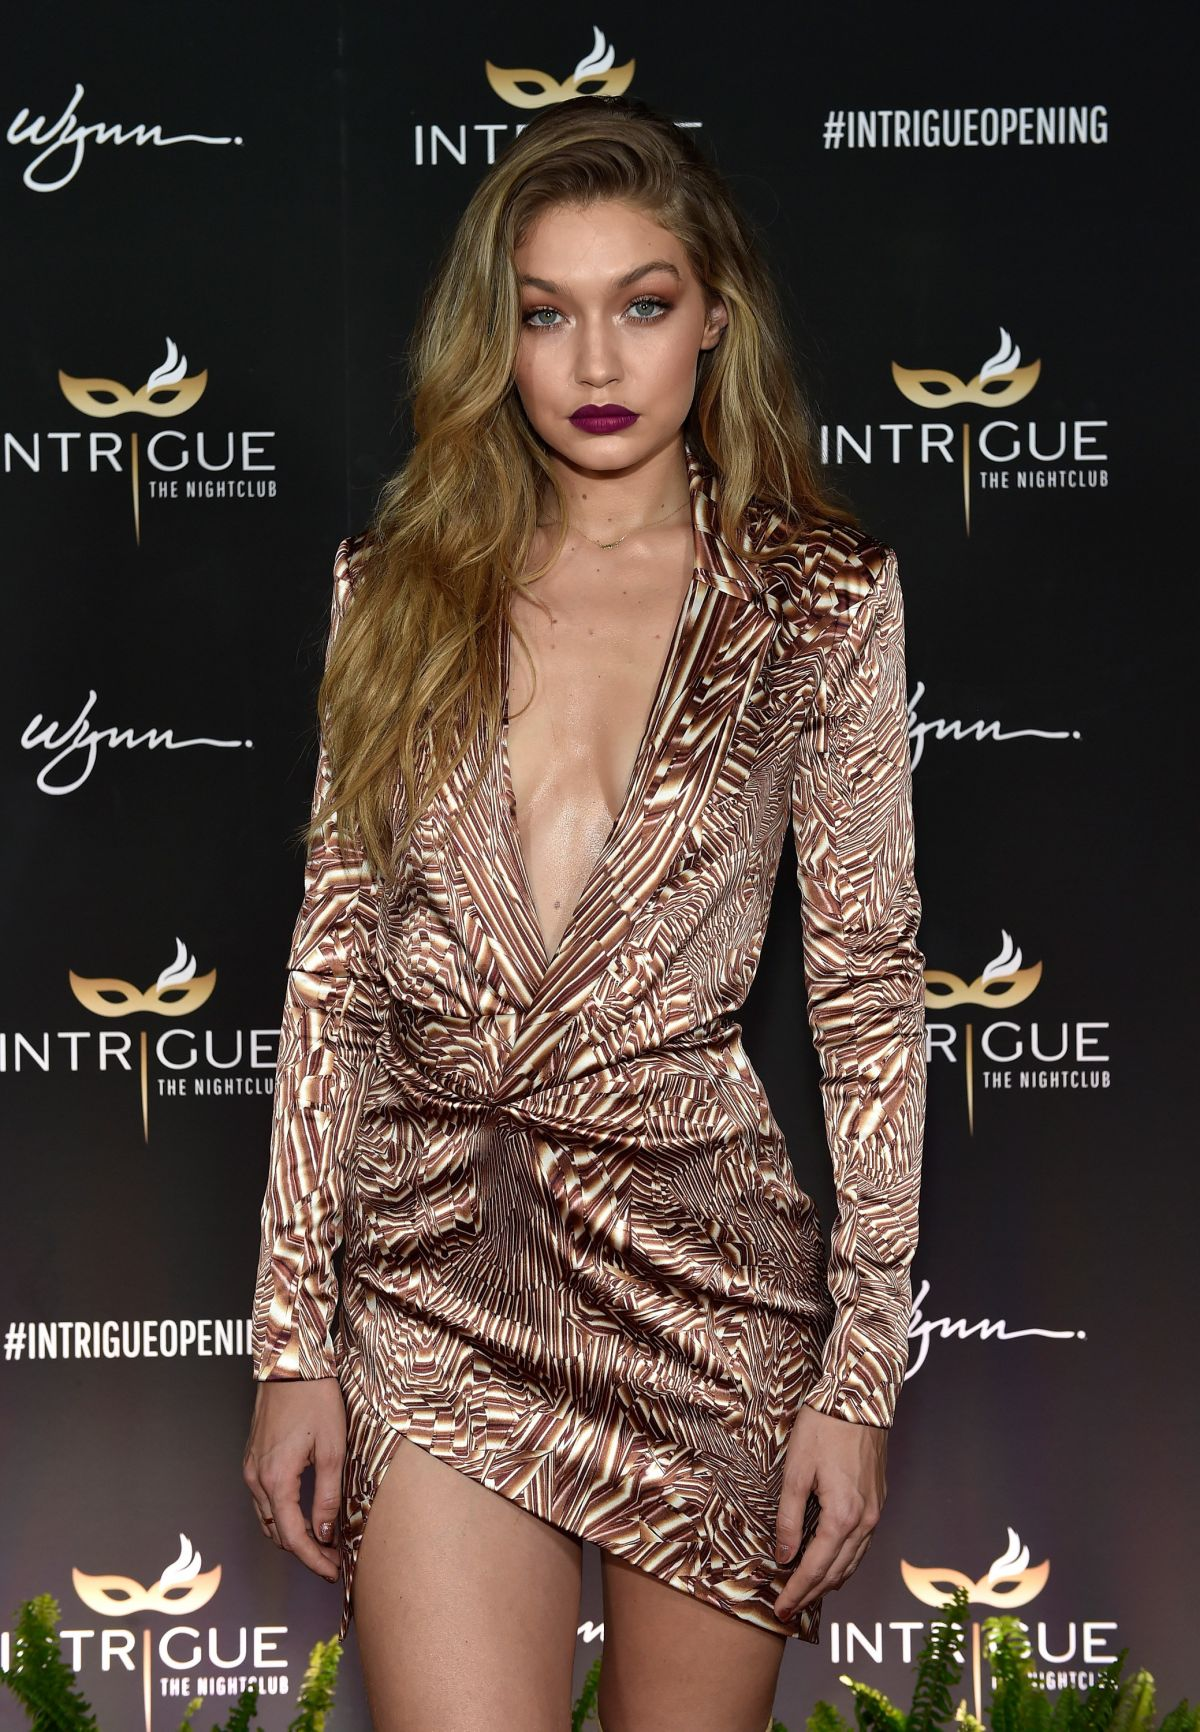 GIGI HADID Celebrates Her 21st Birthday at Intrigue Nightclub in Las Vegas 04/30/2016